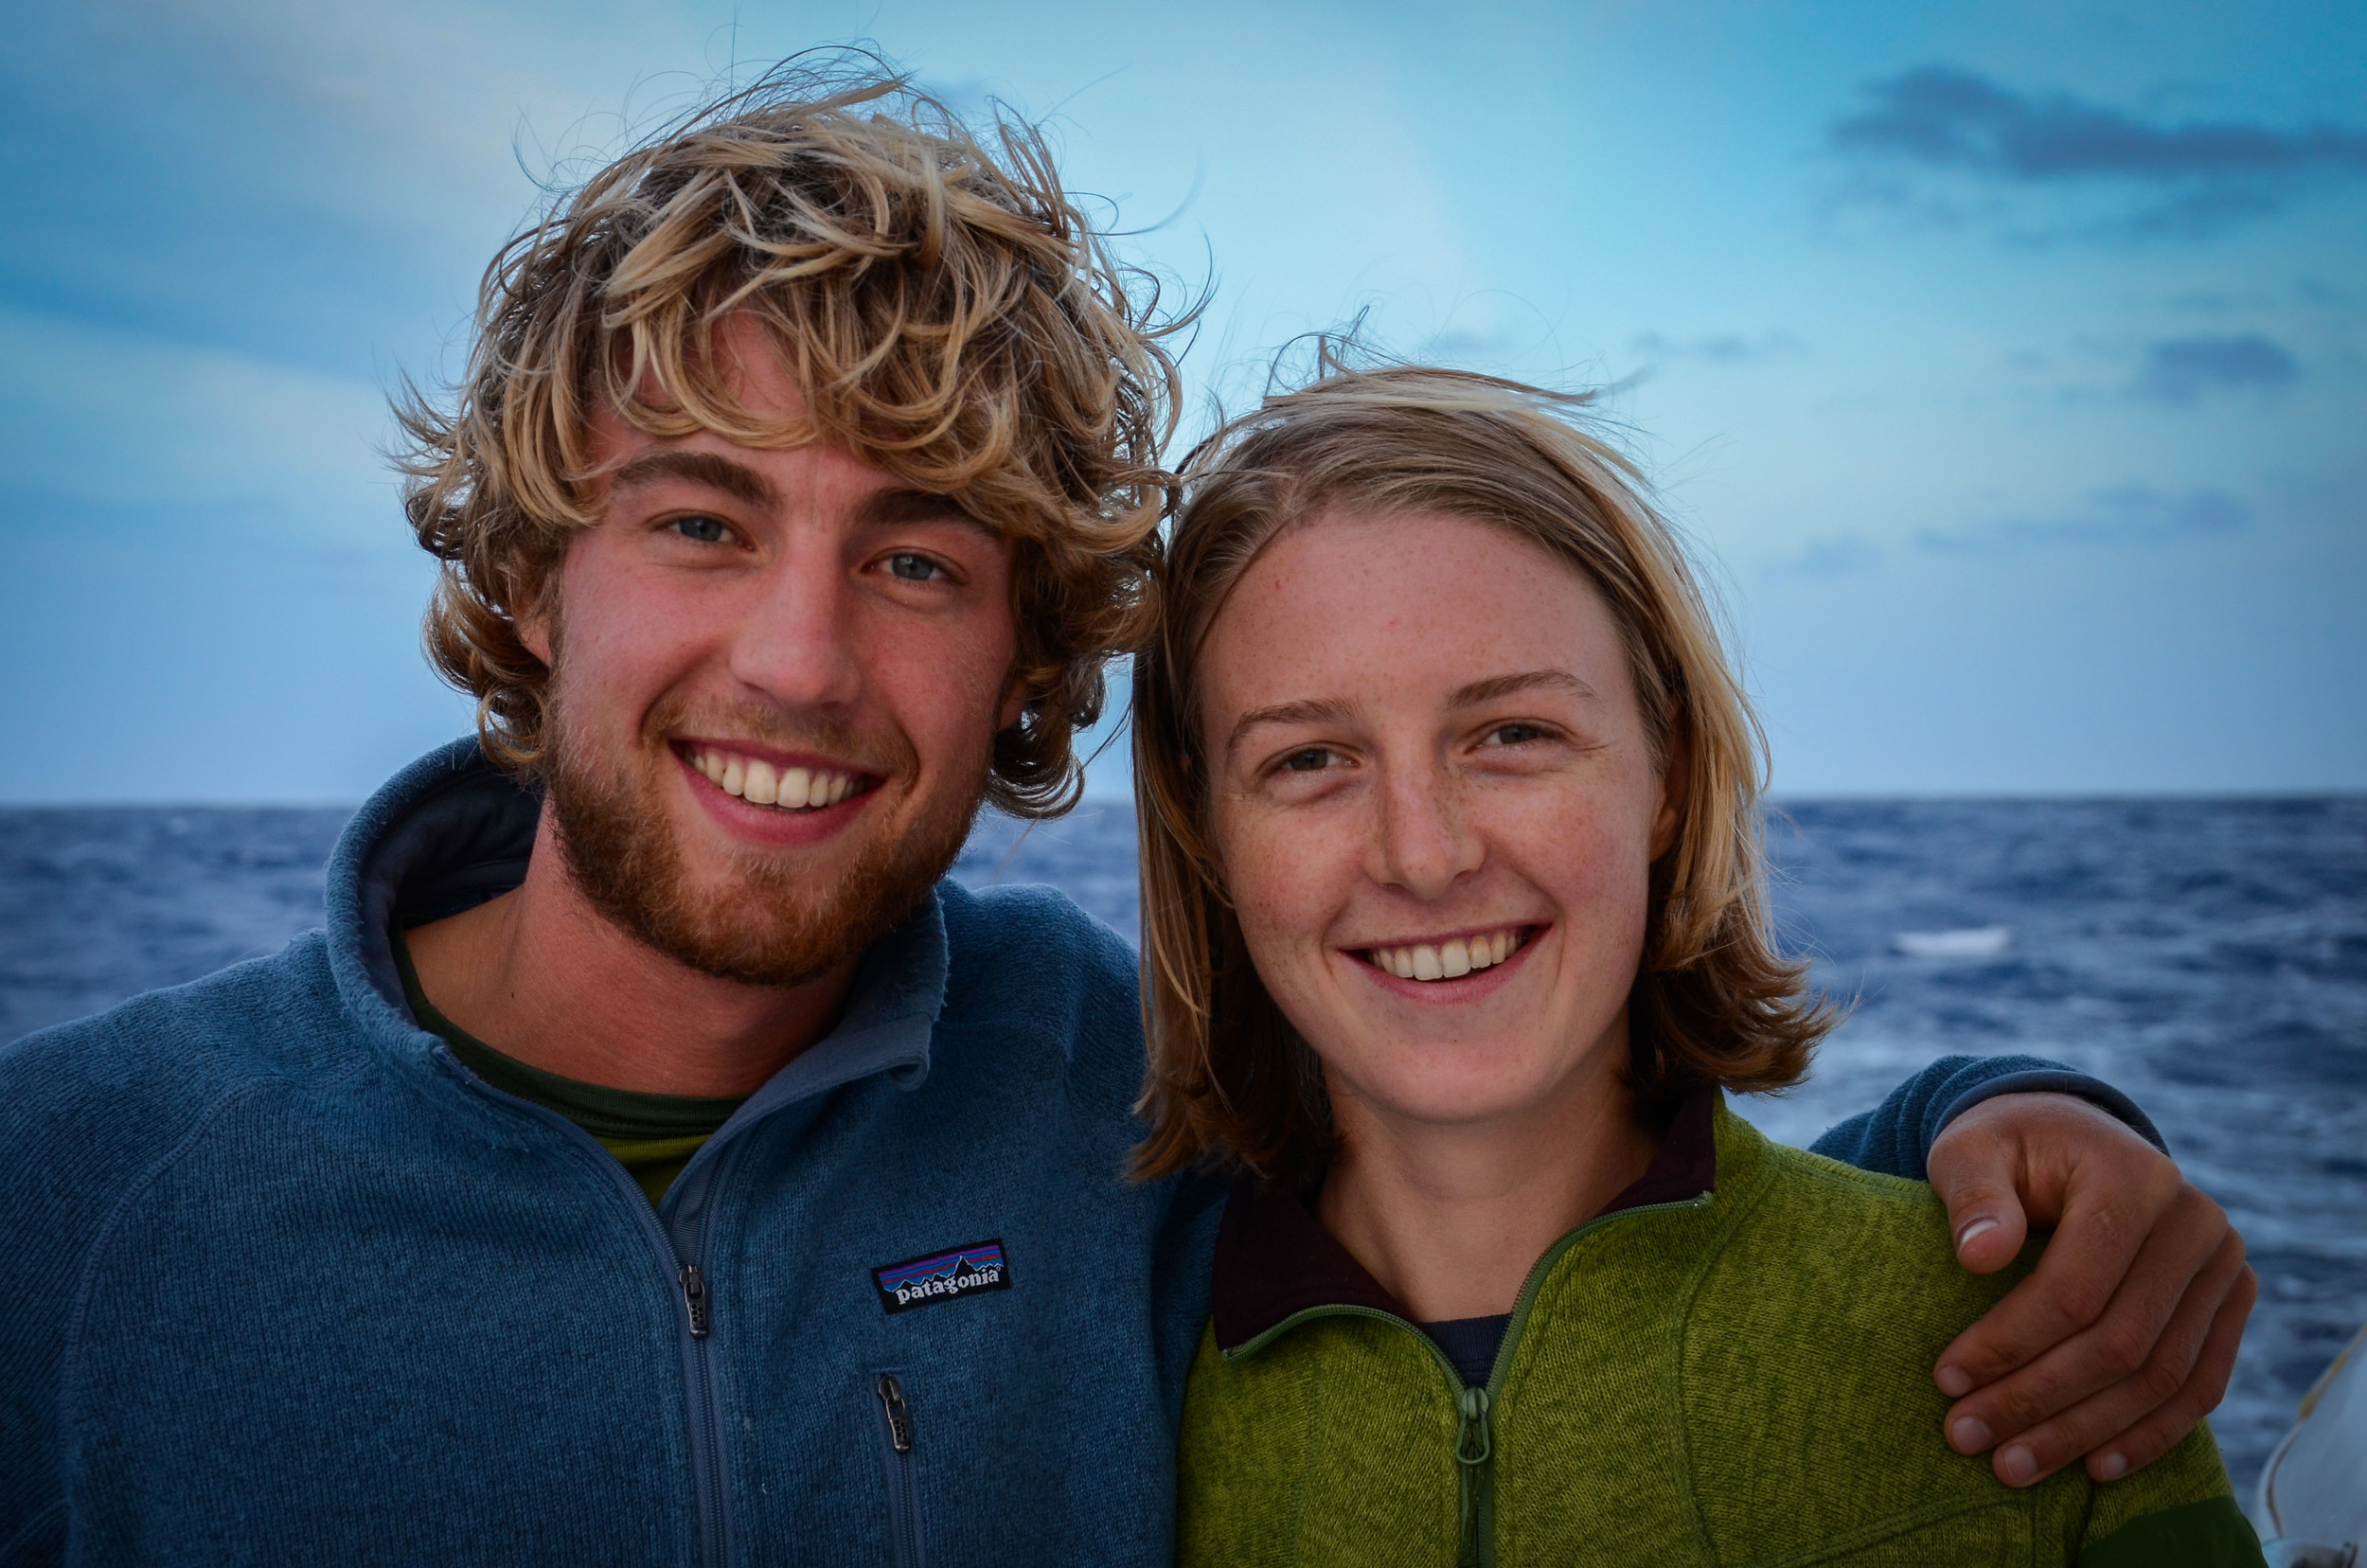 Ten years after the twins captained their first sailboat, they cross the Pacific for the second time. February 2012.